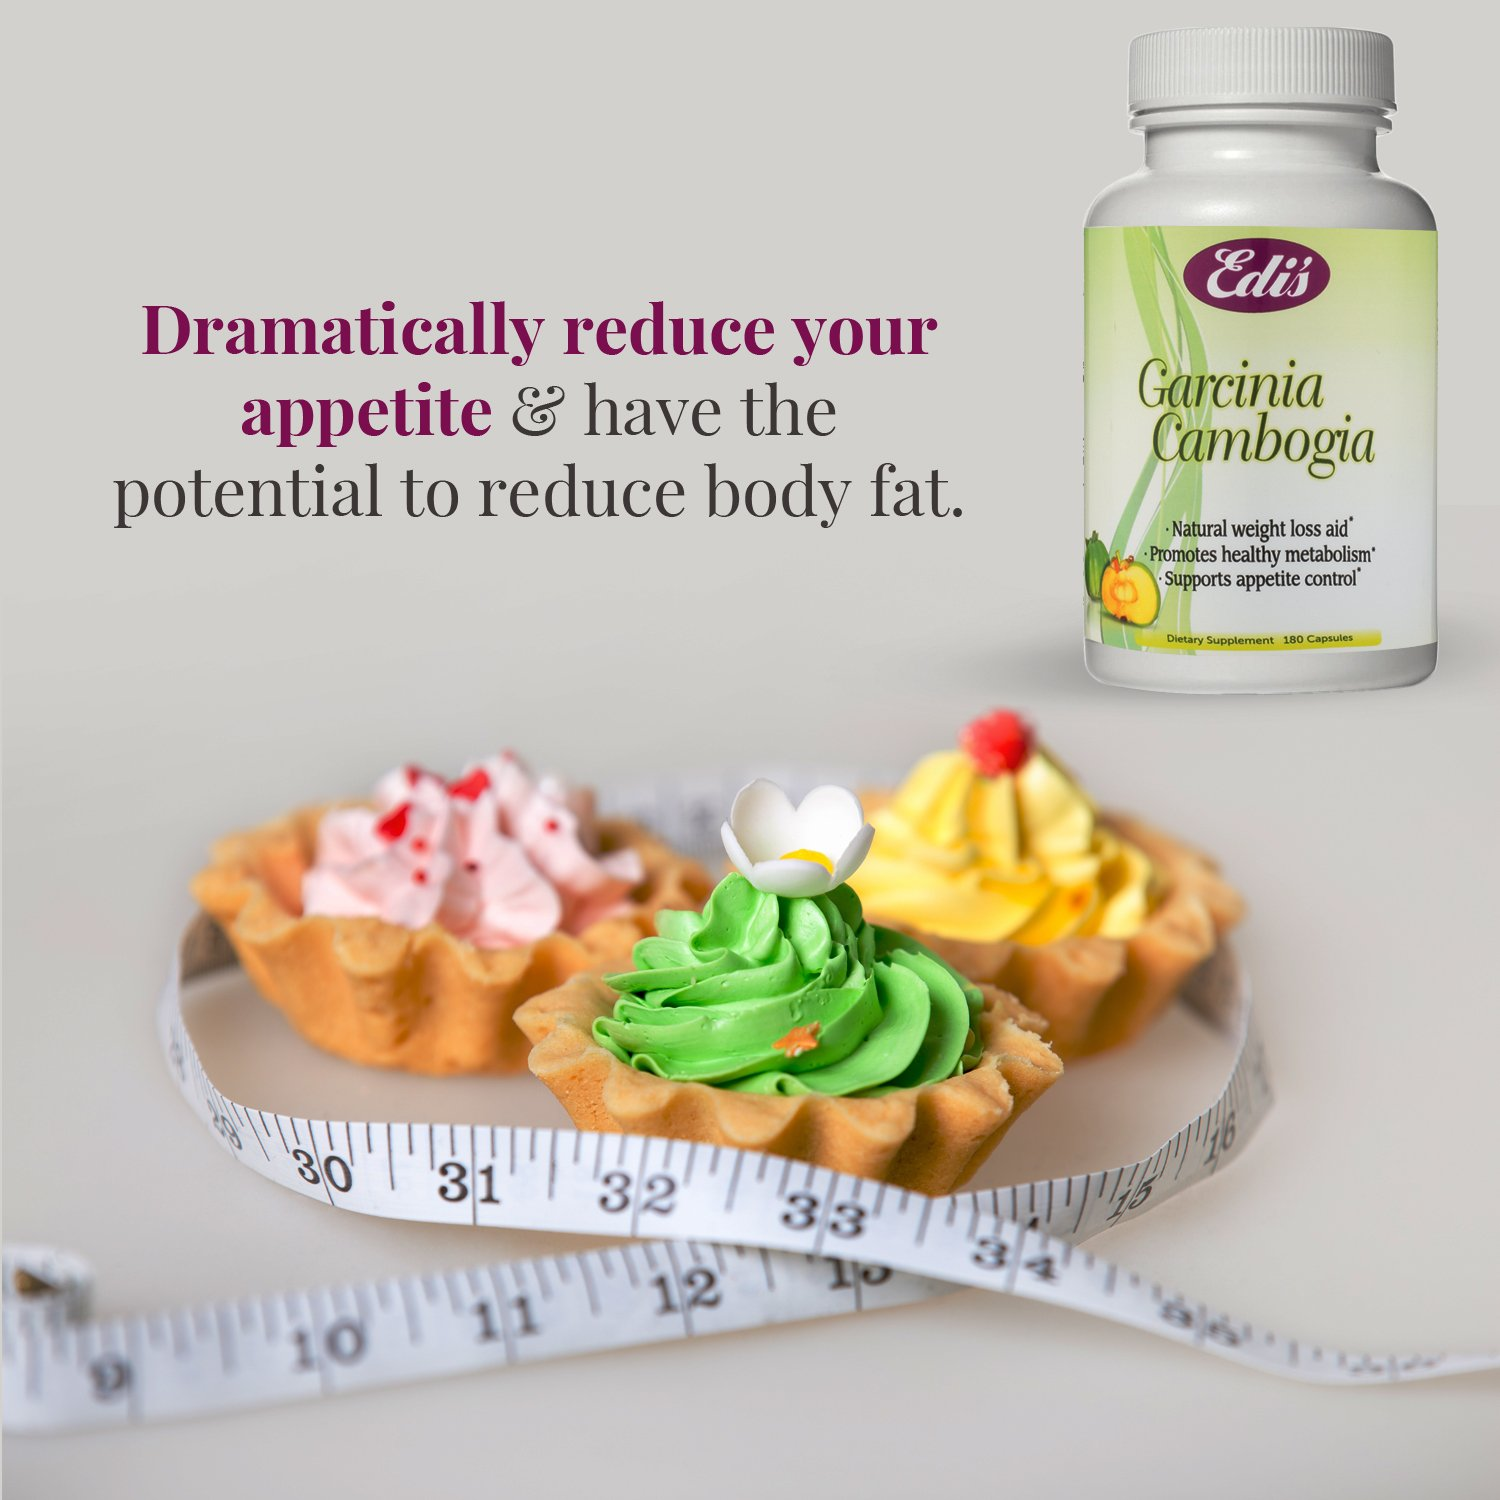 How much pure garcinia cambogia should i take image 9